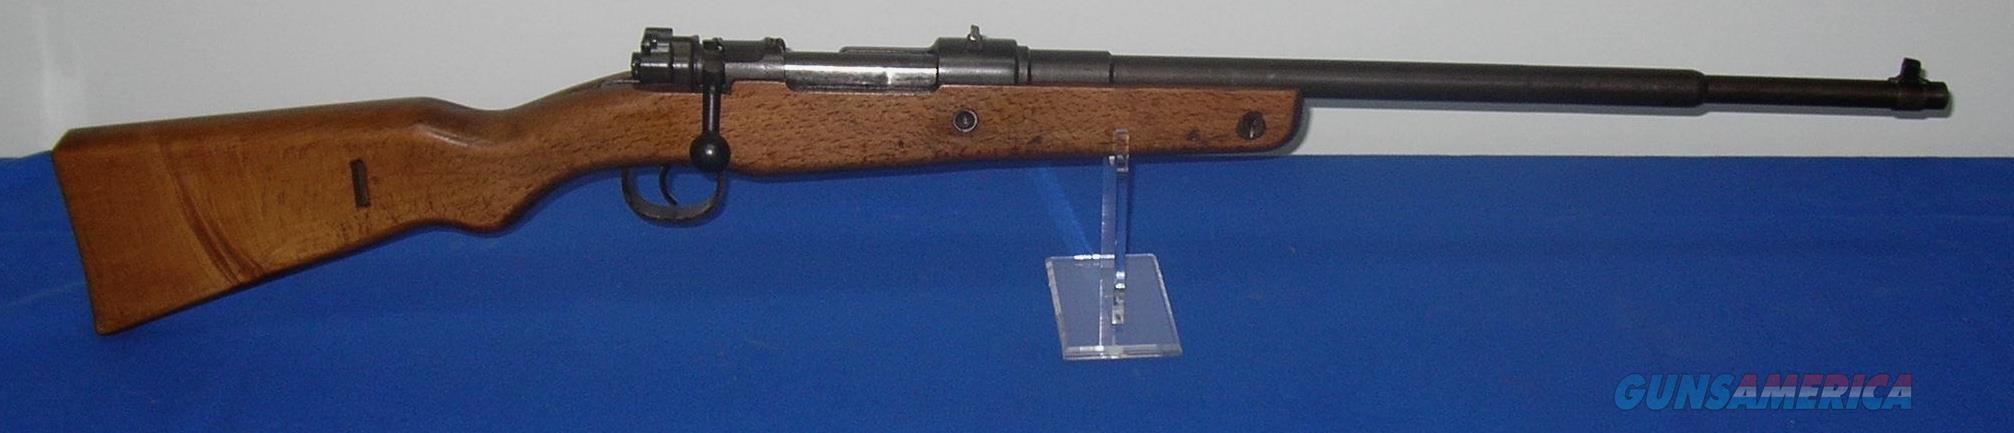 "German WW II Mauser ""Last Ditch"" VK98 Peoples Rifle"